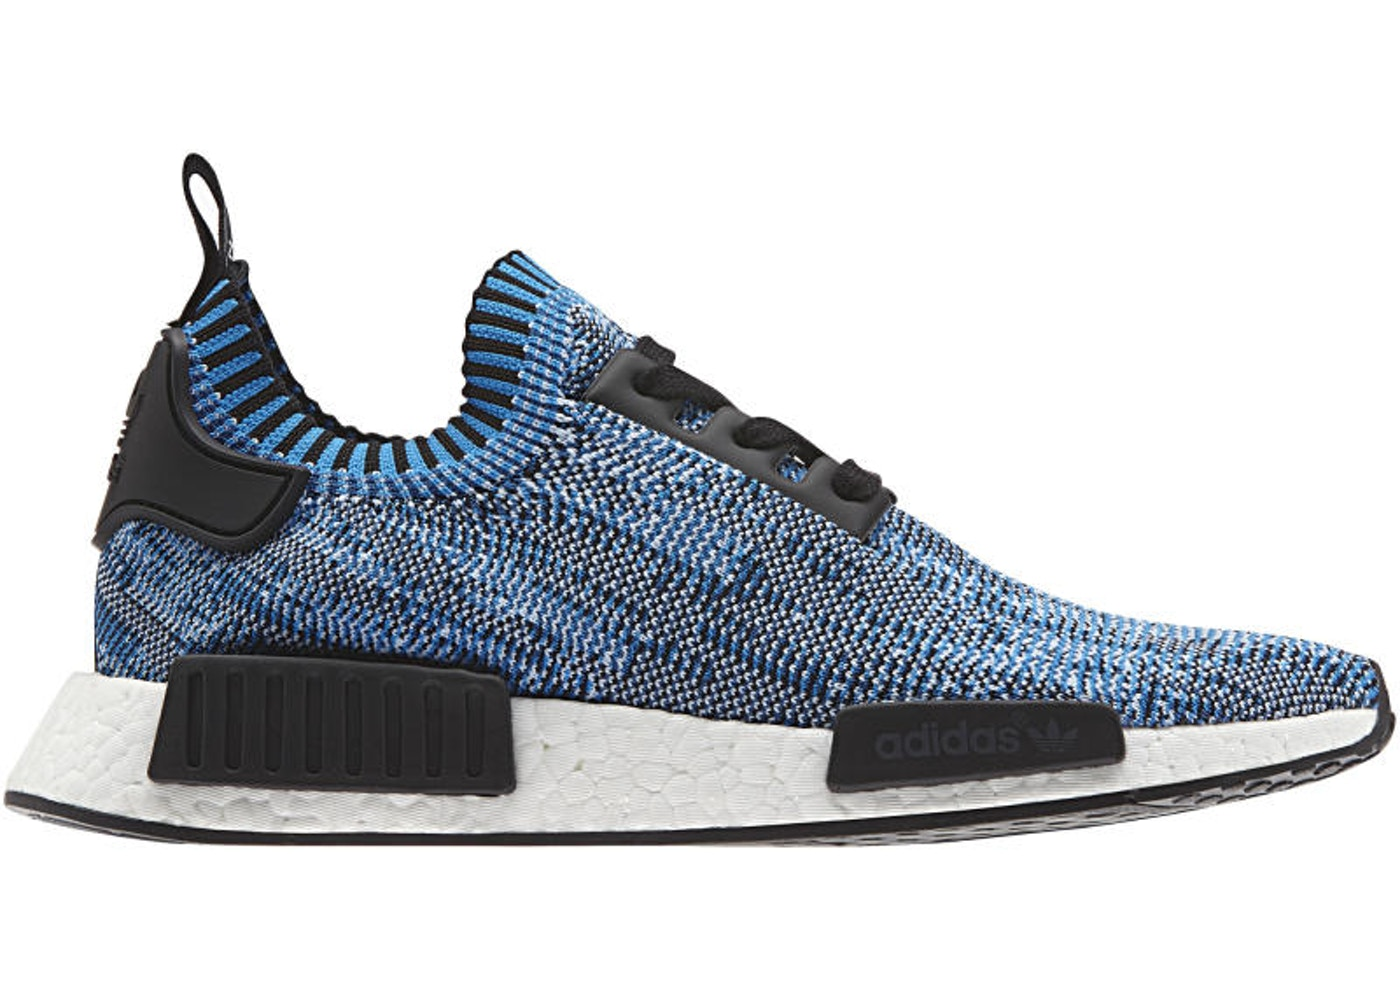 official photos 746e5 d7b51 adidas NMD R1 Blue Camo